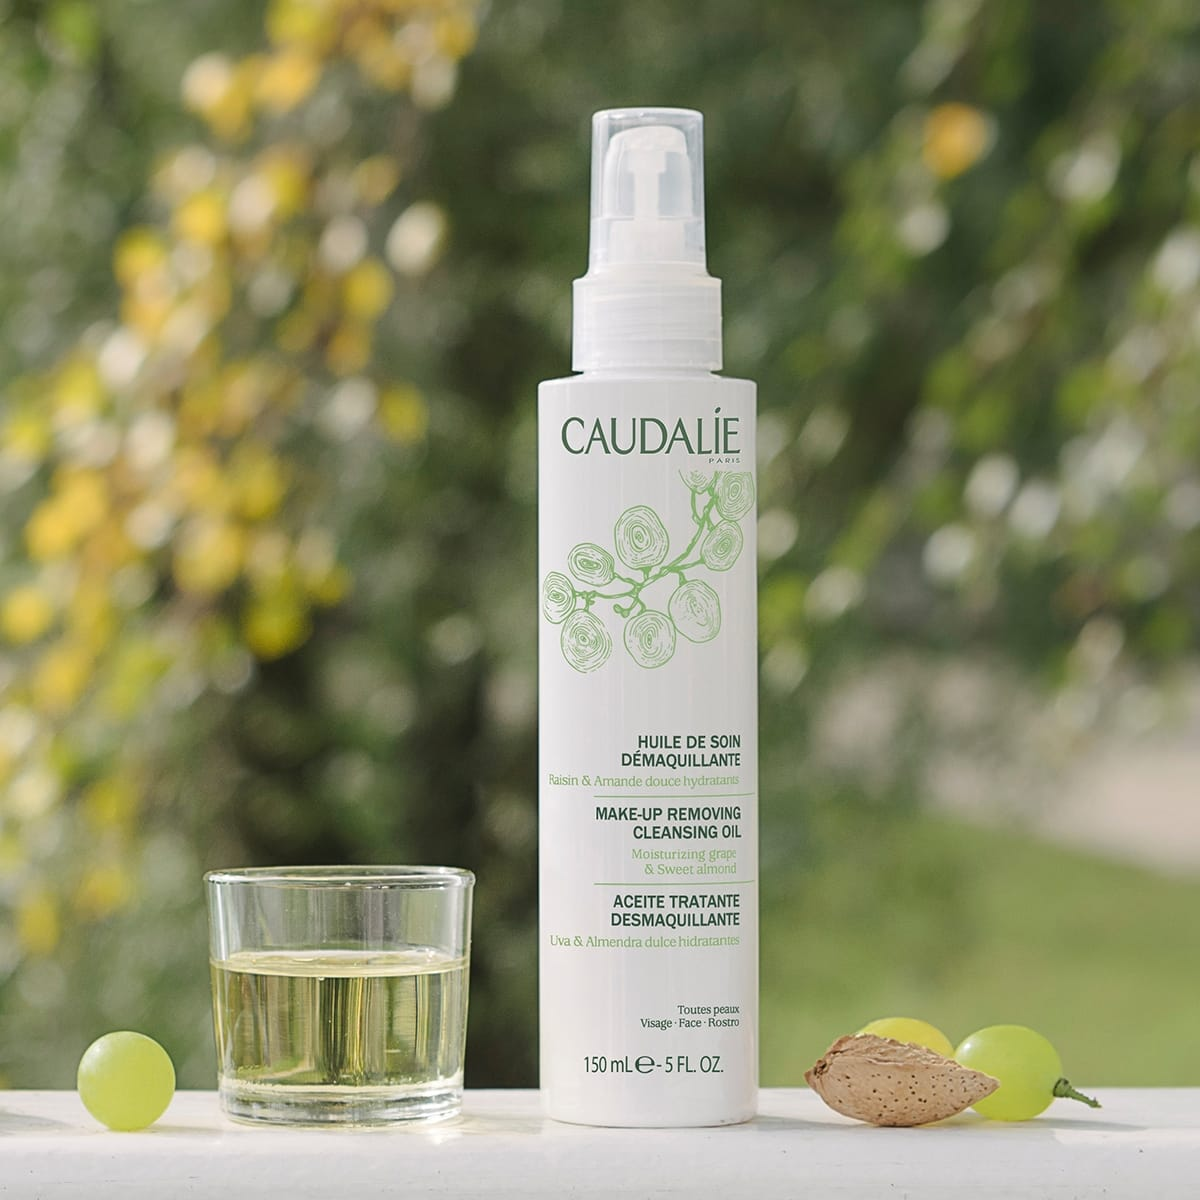 CAUDALIE Make-up Removing Cleansing Oil 150ml